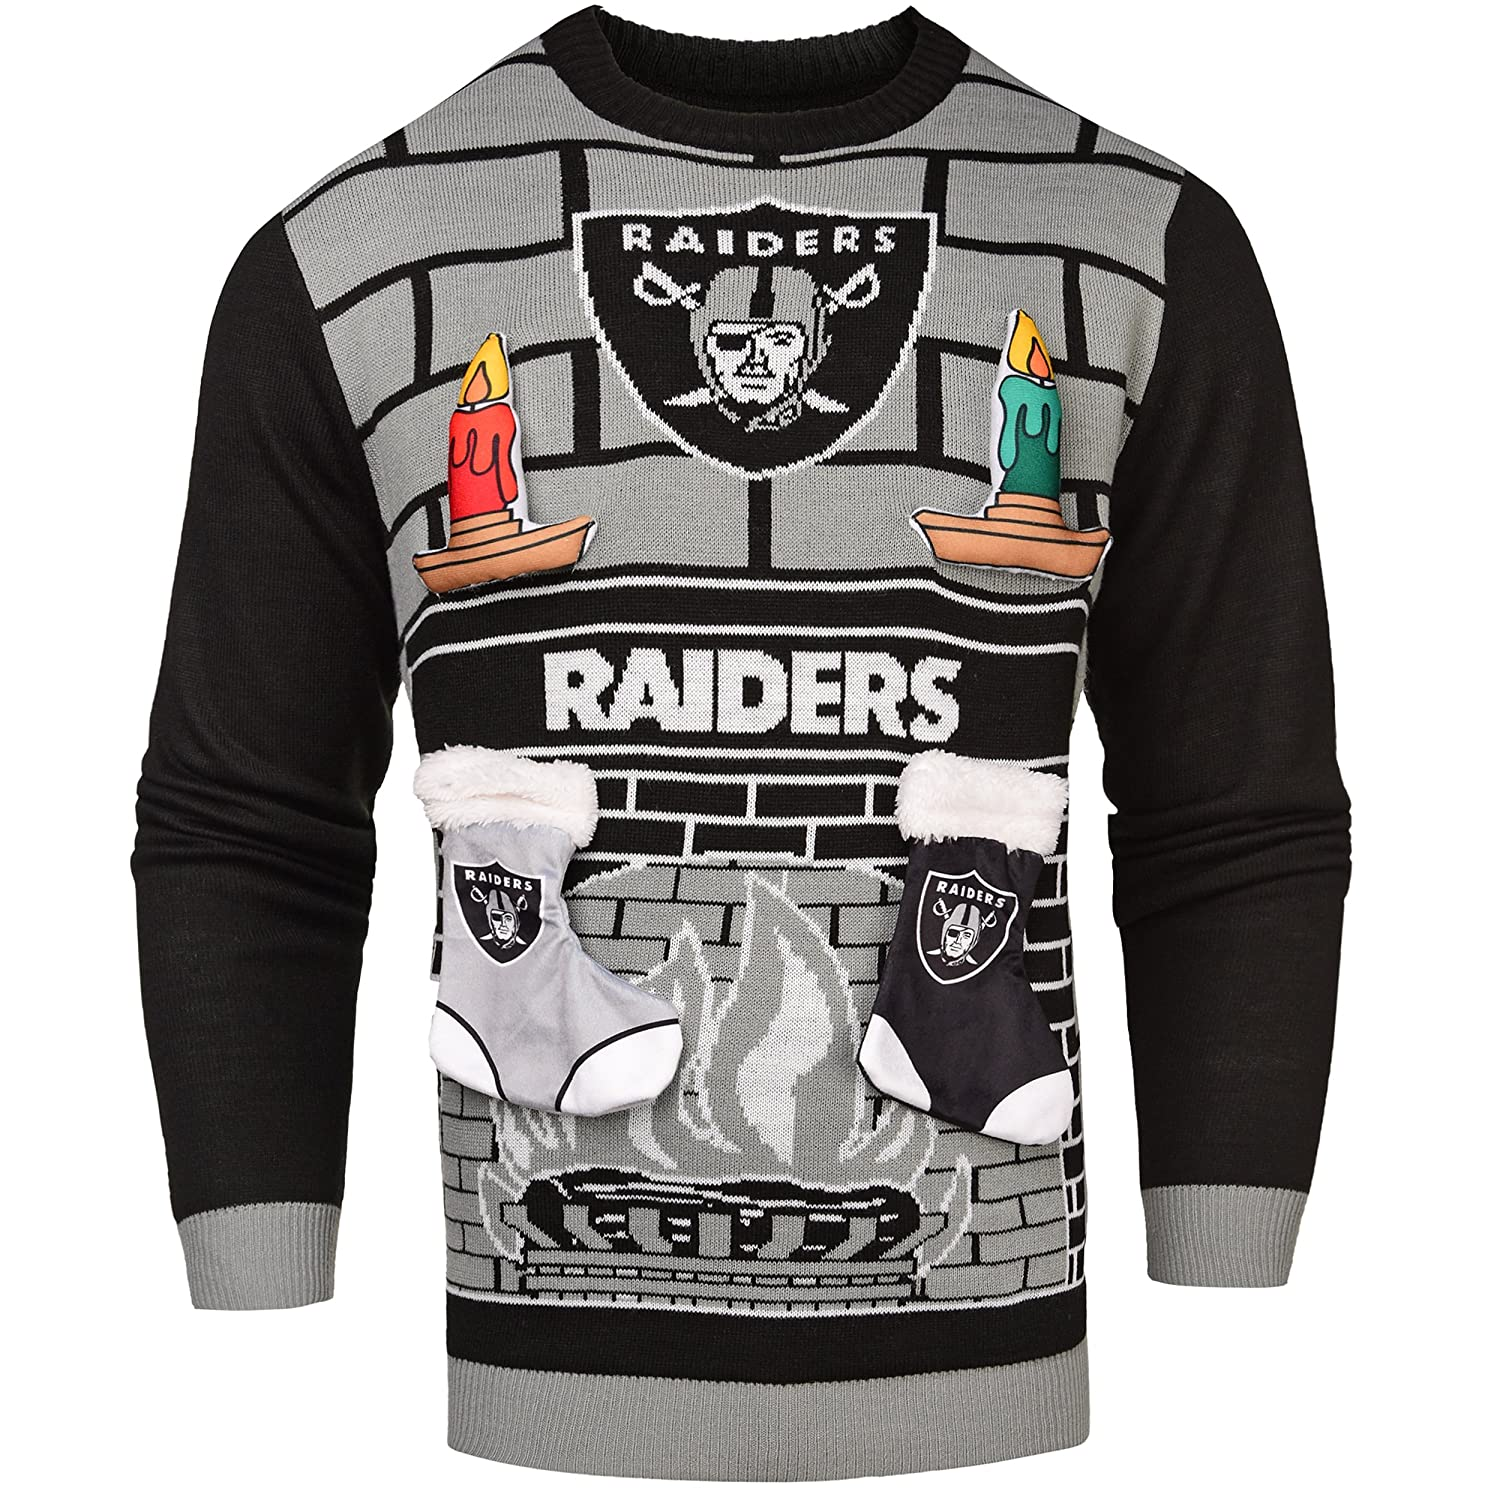 Amazon.com : Oakland Raiders Ugly 3D Sweater - Mens Small : Sports ...